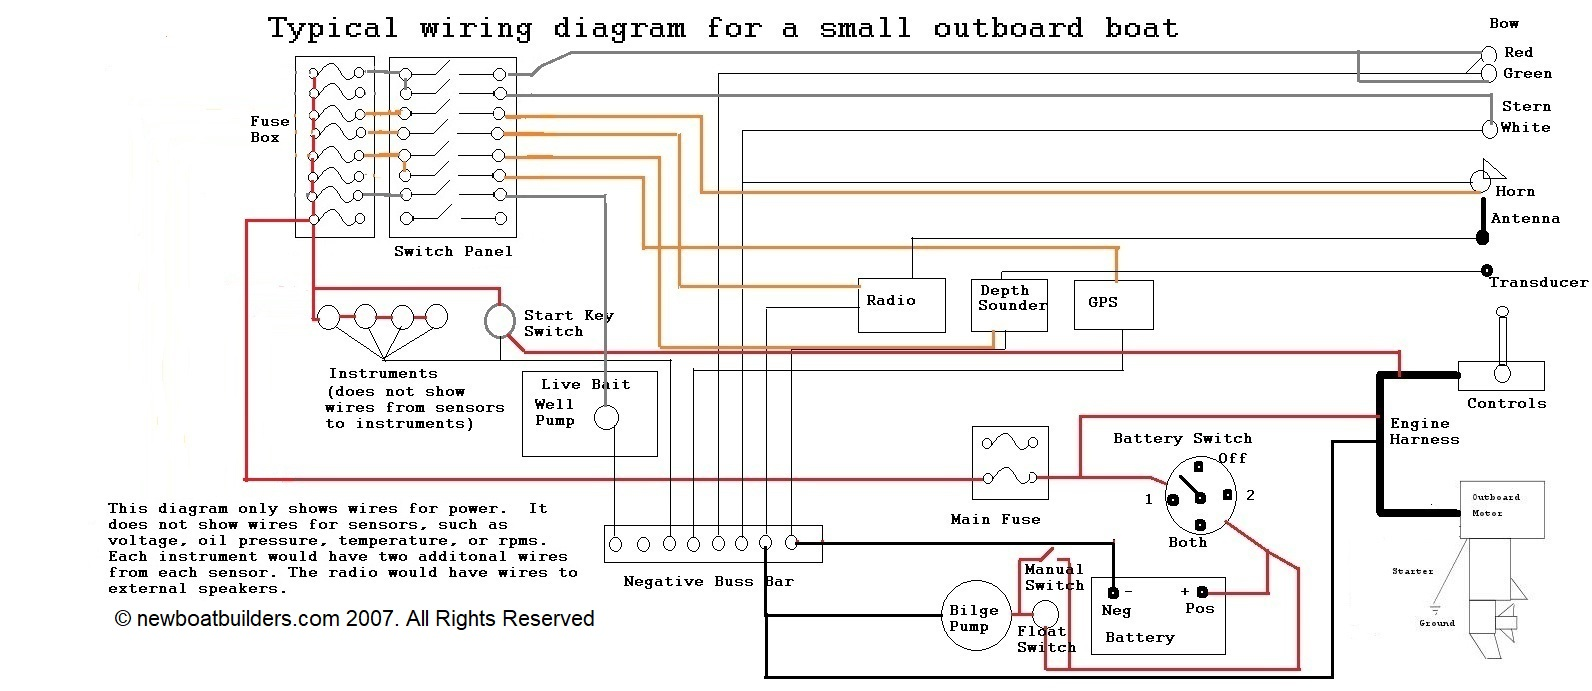 hight resolution of jet boat wiring diagram wiring library jet boat ignition wiring diagram